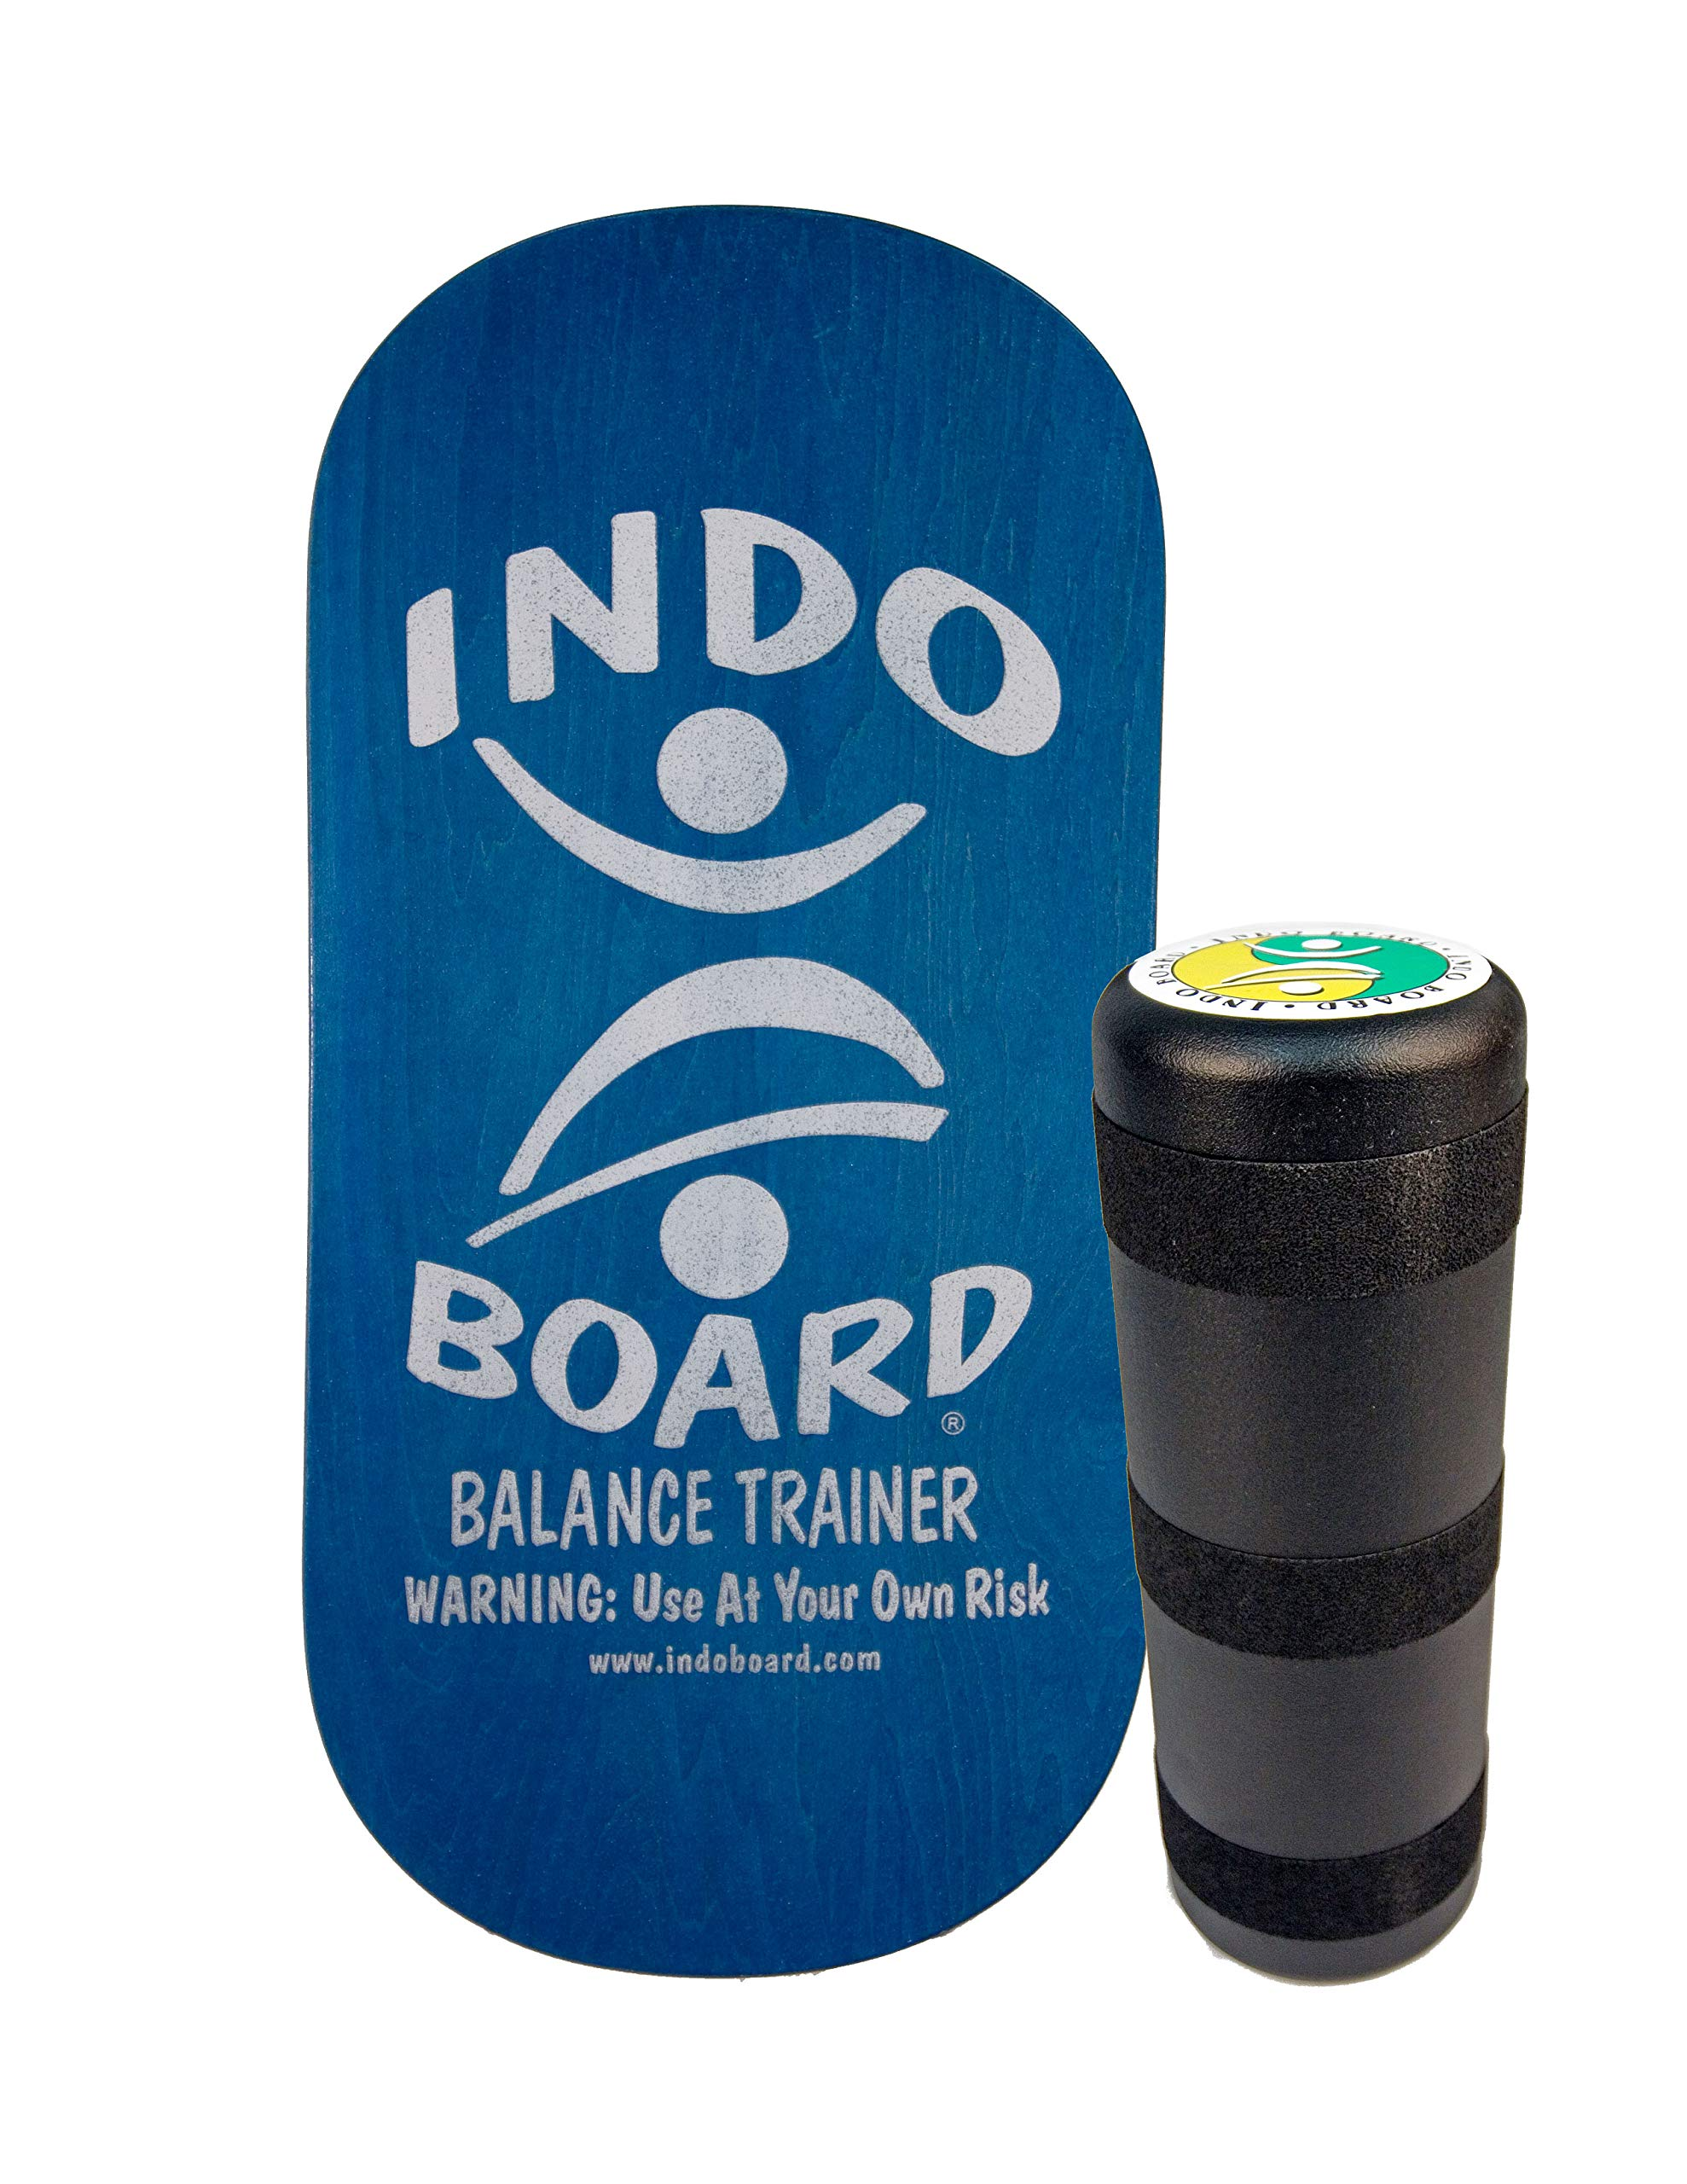 INDO BOARD Rocker 33'' X 16'' with 6.5'' Roller - High Performance Balance Board for Advanced Tricks - Aqua Blue